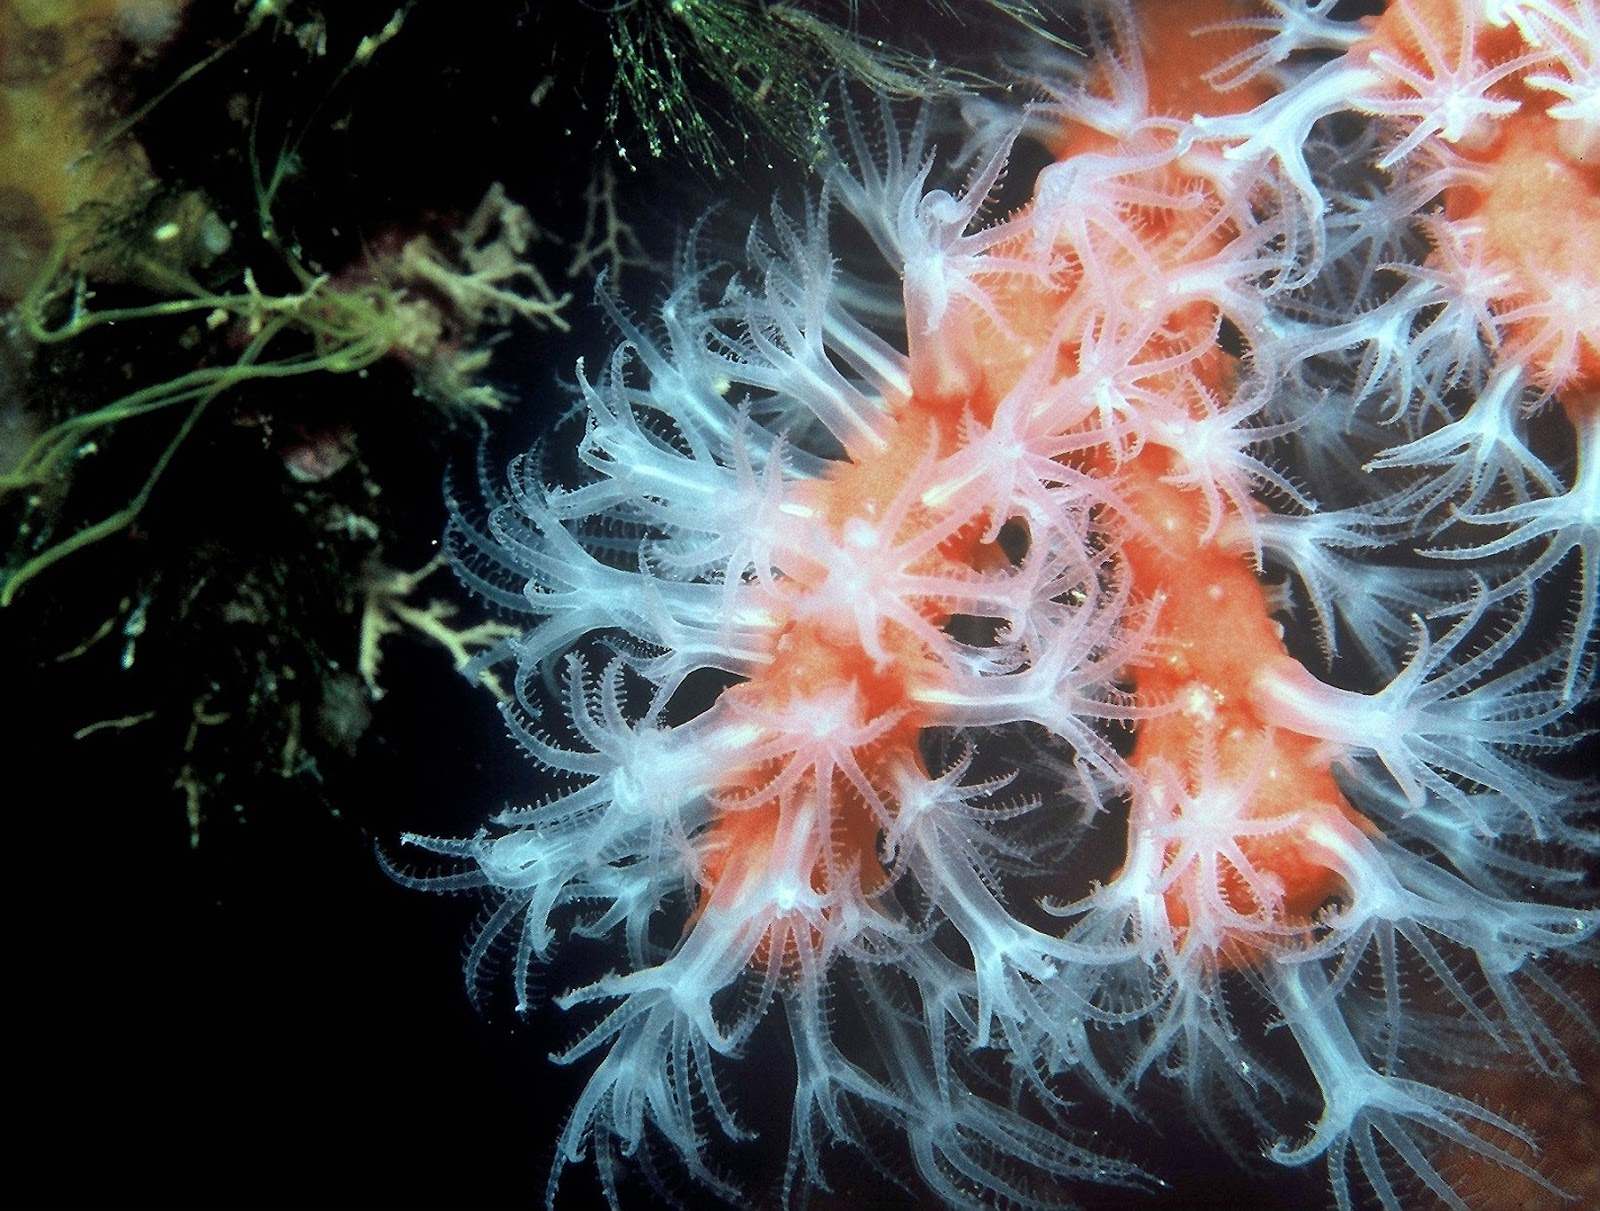 Picture of coral marine polyps at the bottom of the ocean.